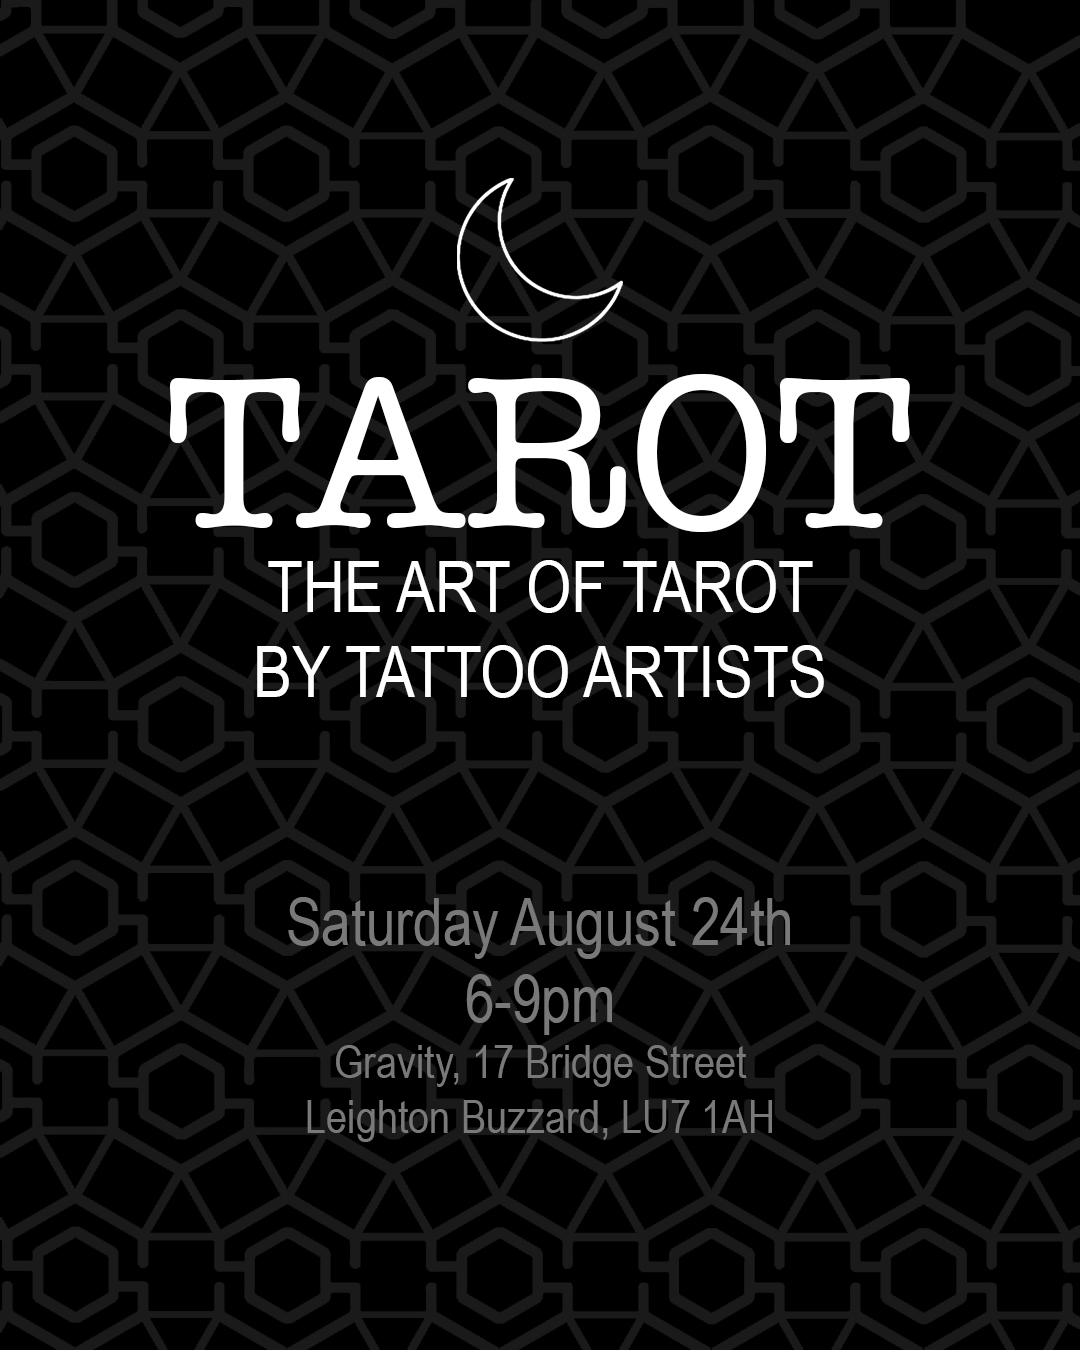 The Art of Tarot by Tattooists